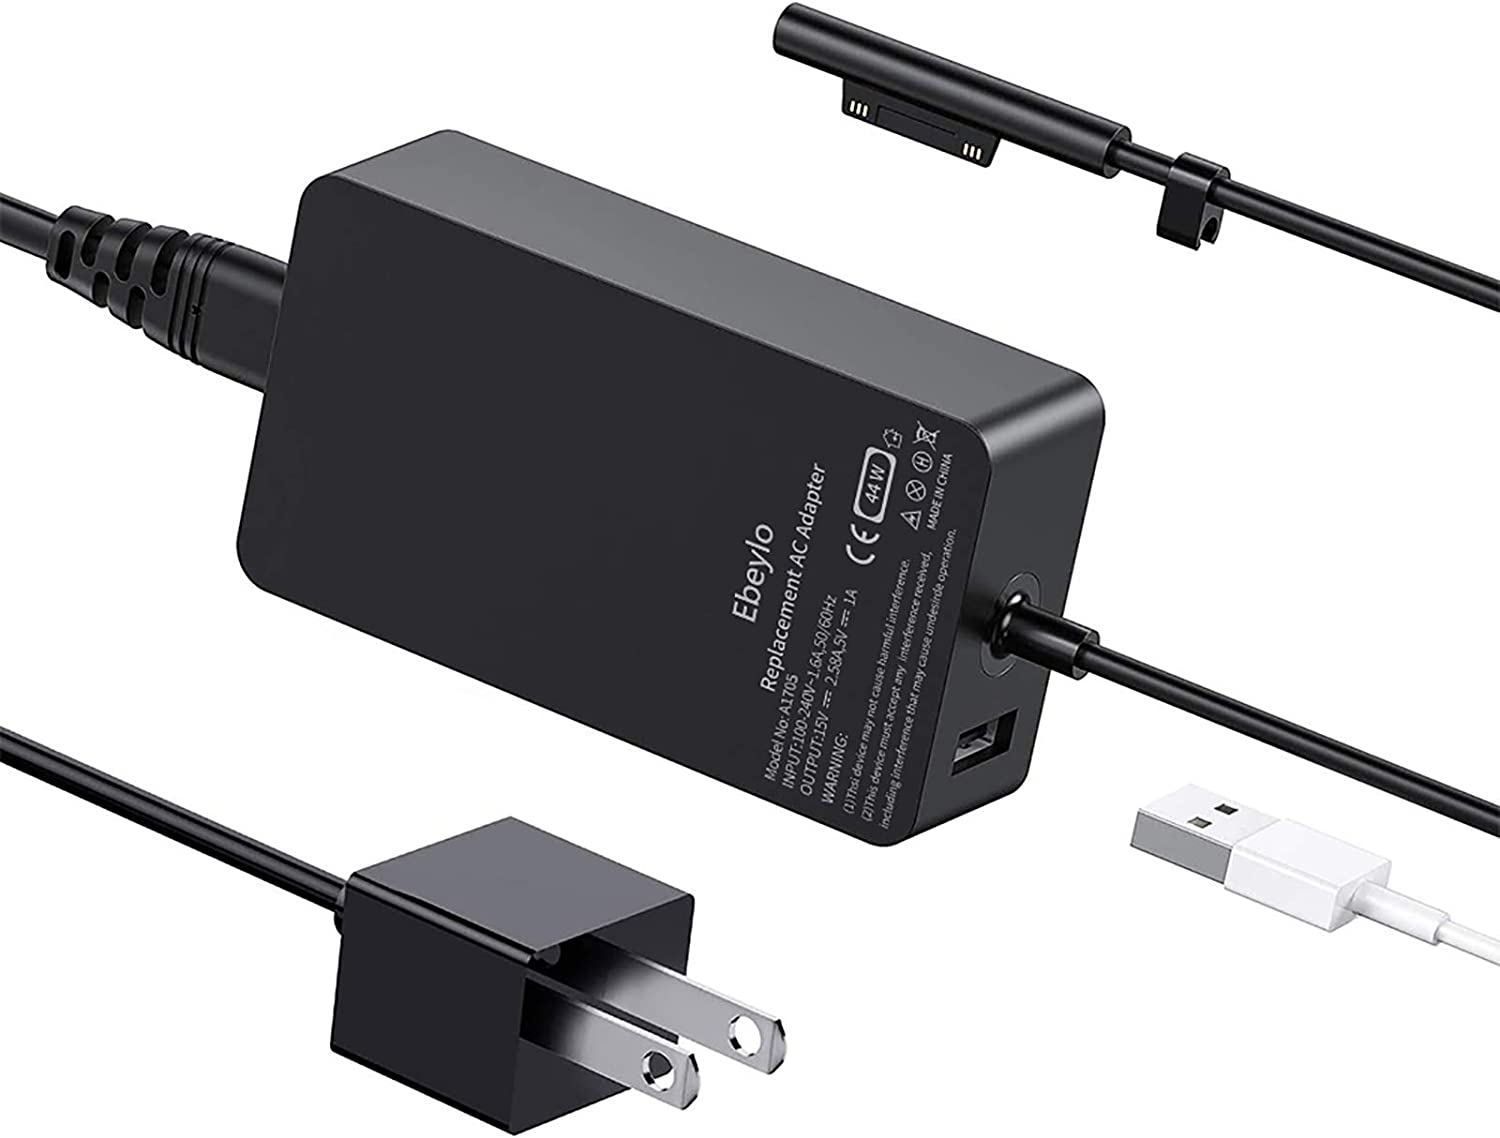 Surface Pro Charger, Ebeylo 44W 15V 2.58A Power Supply [Latest 2020] for Microsoft Surface Pro X/7/6/5/4/3,Surface Laptop 1/2, Surface Book 3/2/1 & Surface Go